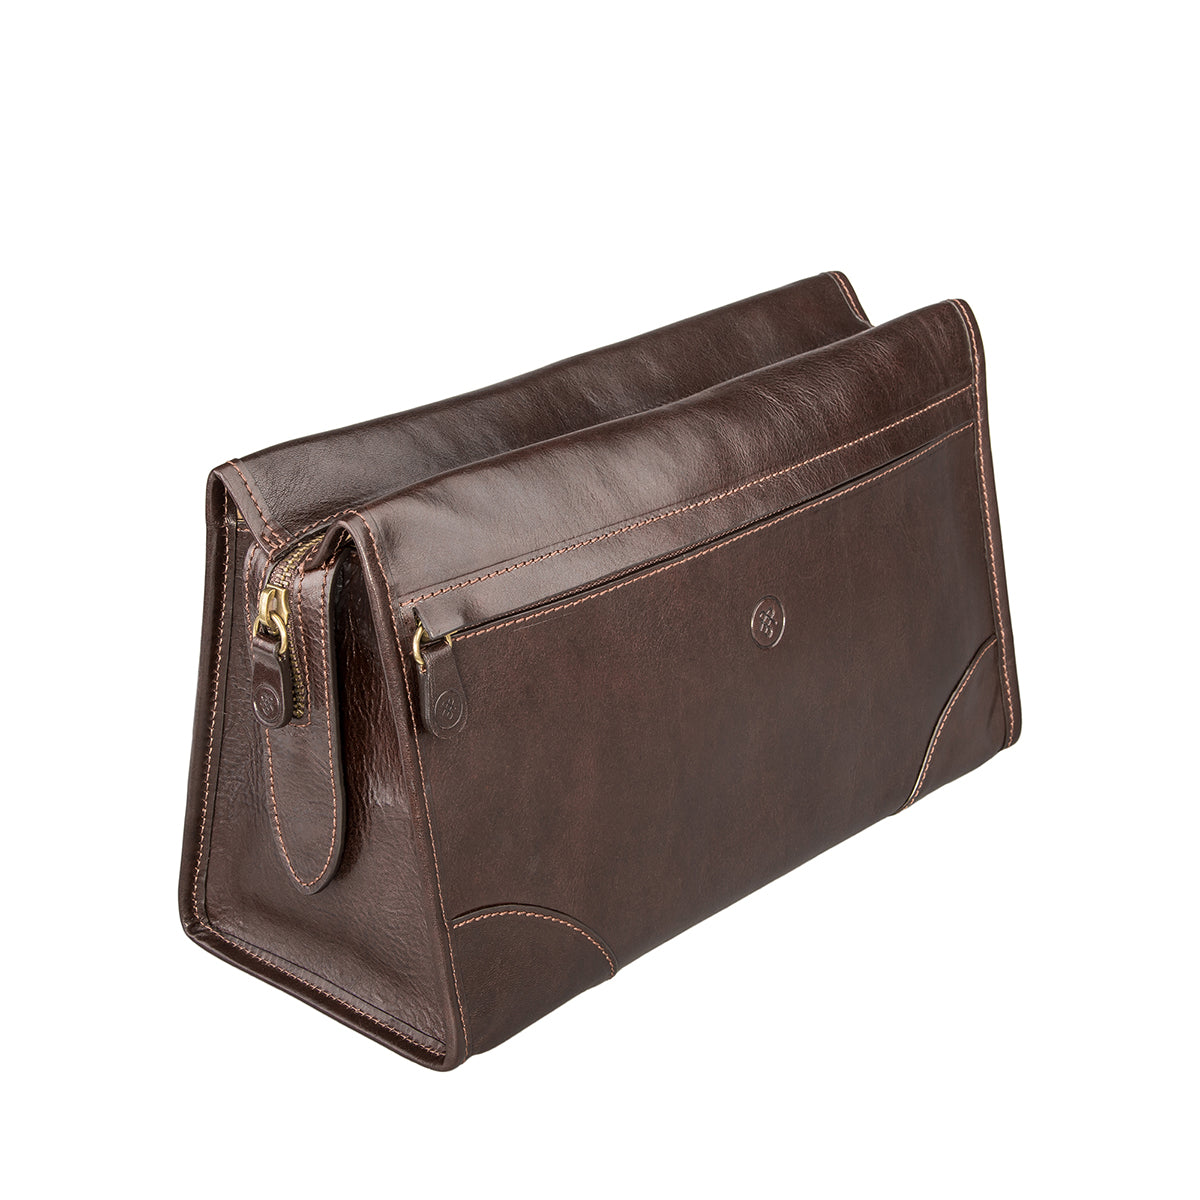 Image 2 of the 'Tanta' Brown Veg-Tanned Leather Wash Bag